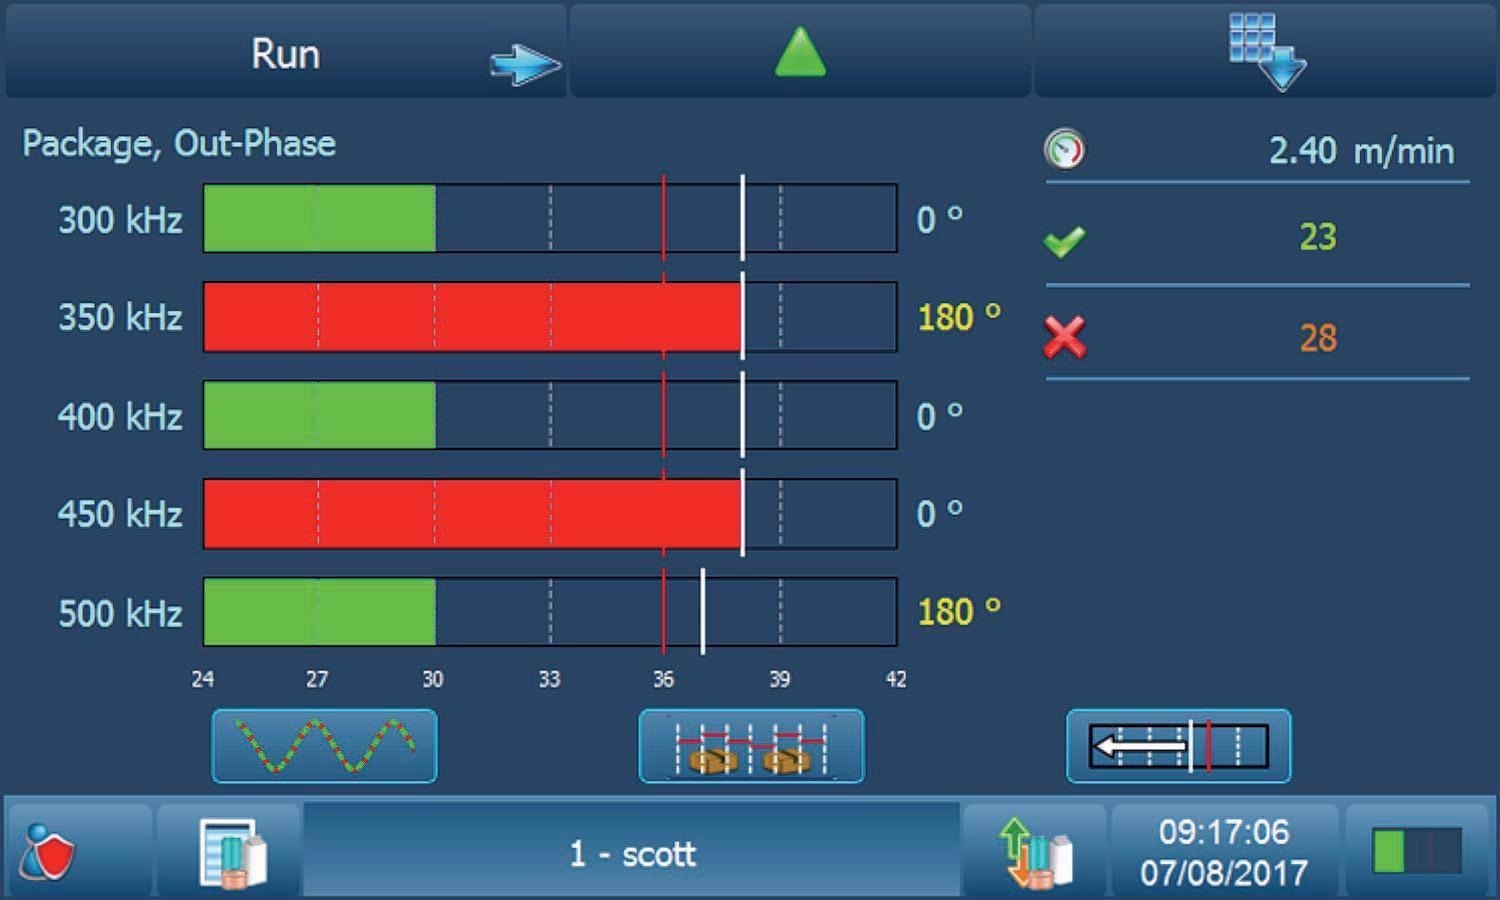 Results of each package at each Multiscan frequency are shown clearly on the Run screen.